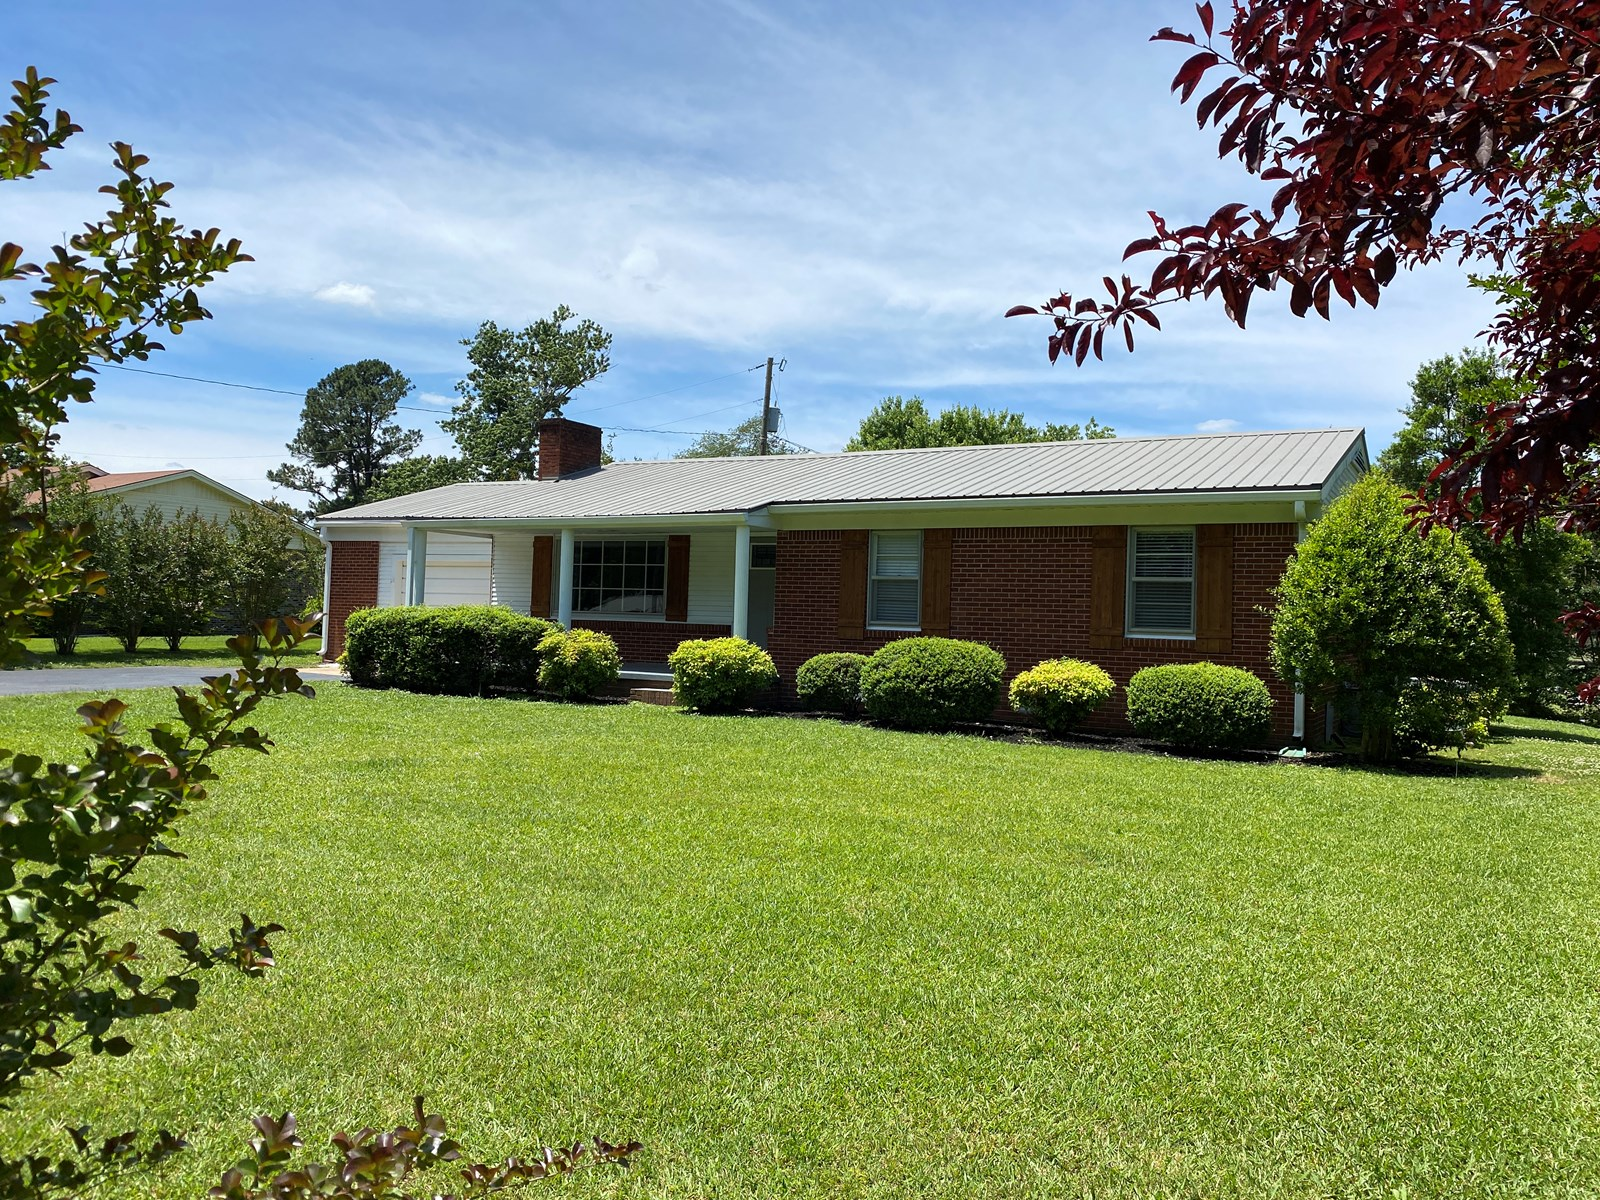 3 BEDROOM HOME IN ADAMSVILLE, TN FOR SALE, NEWLY RESTORED